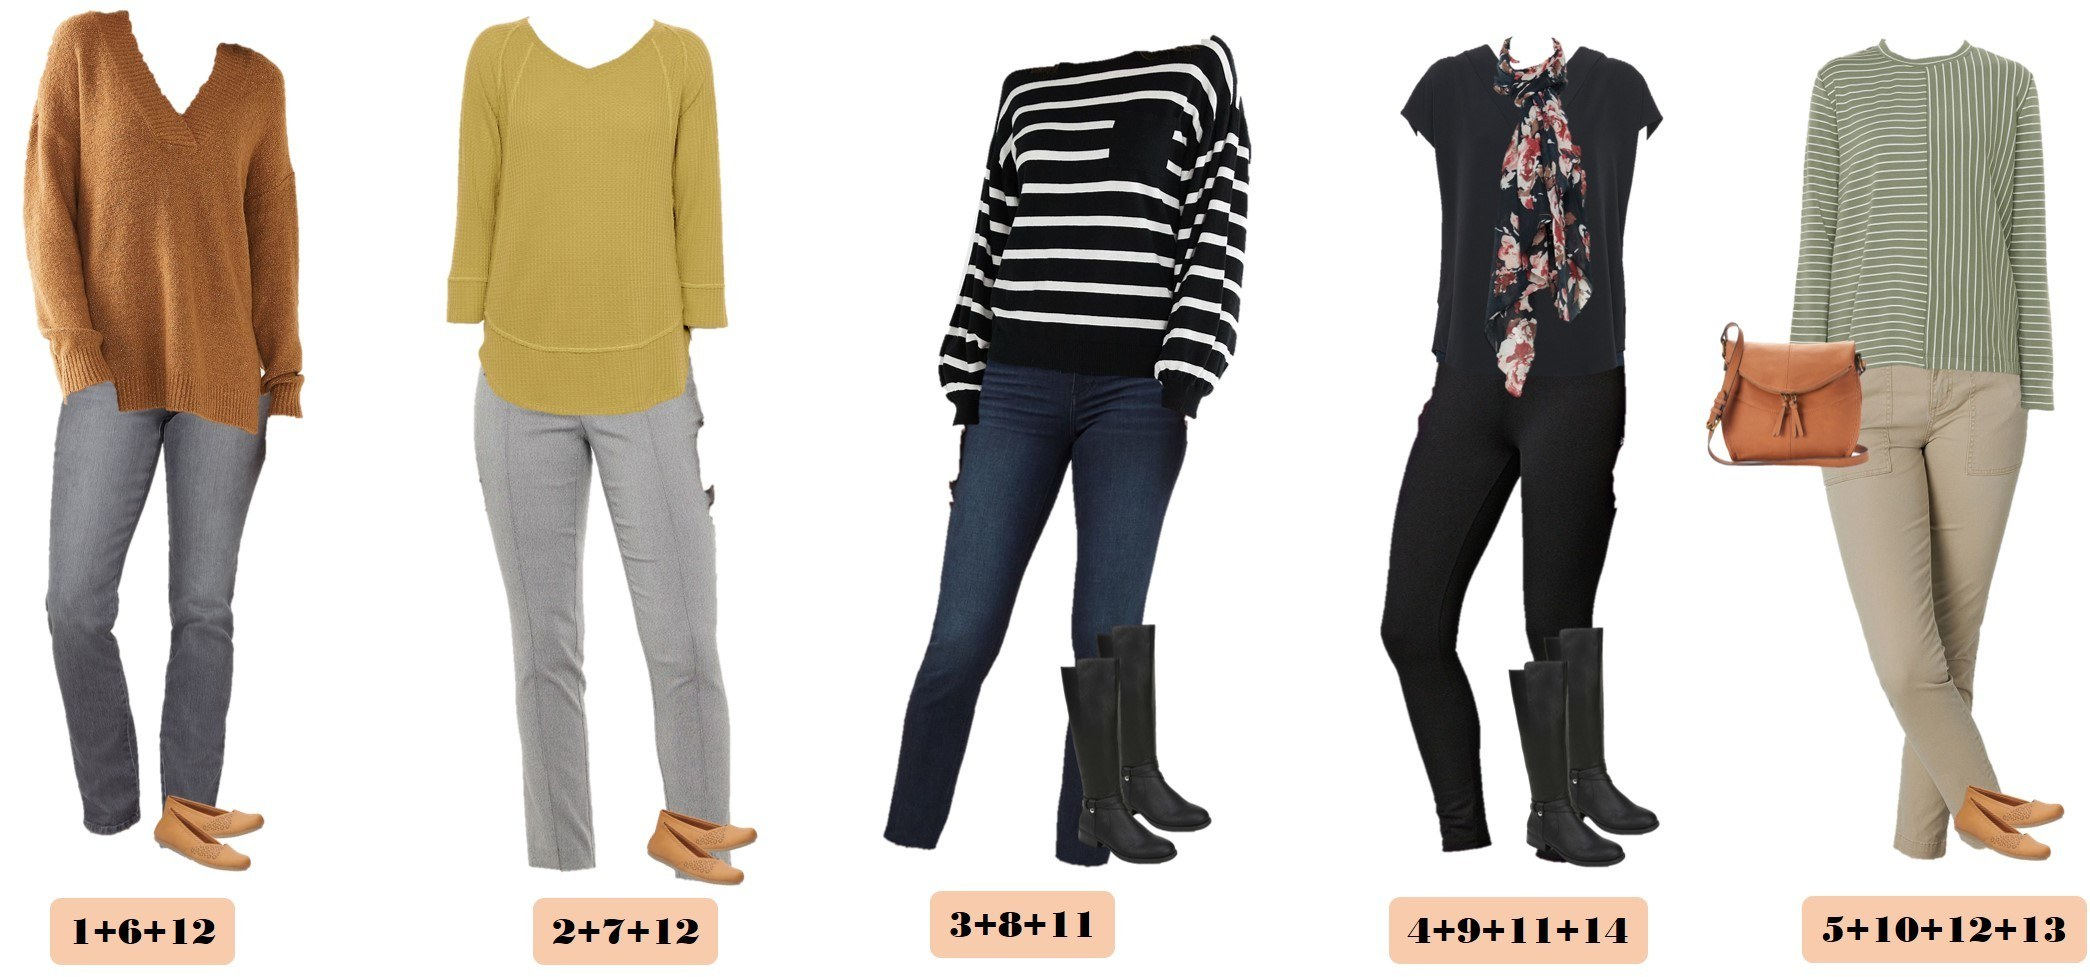 mix and match winter capsule wardrobe from Kohls - 5 winter outfits